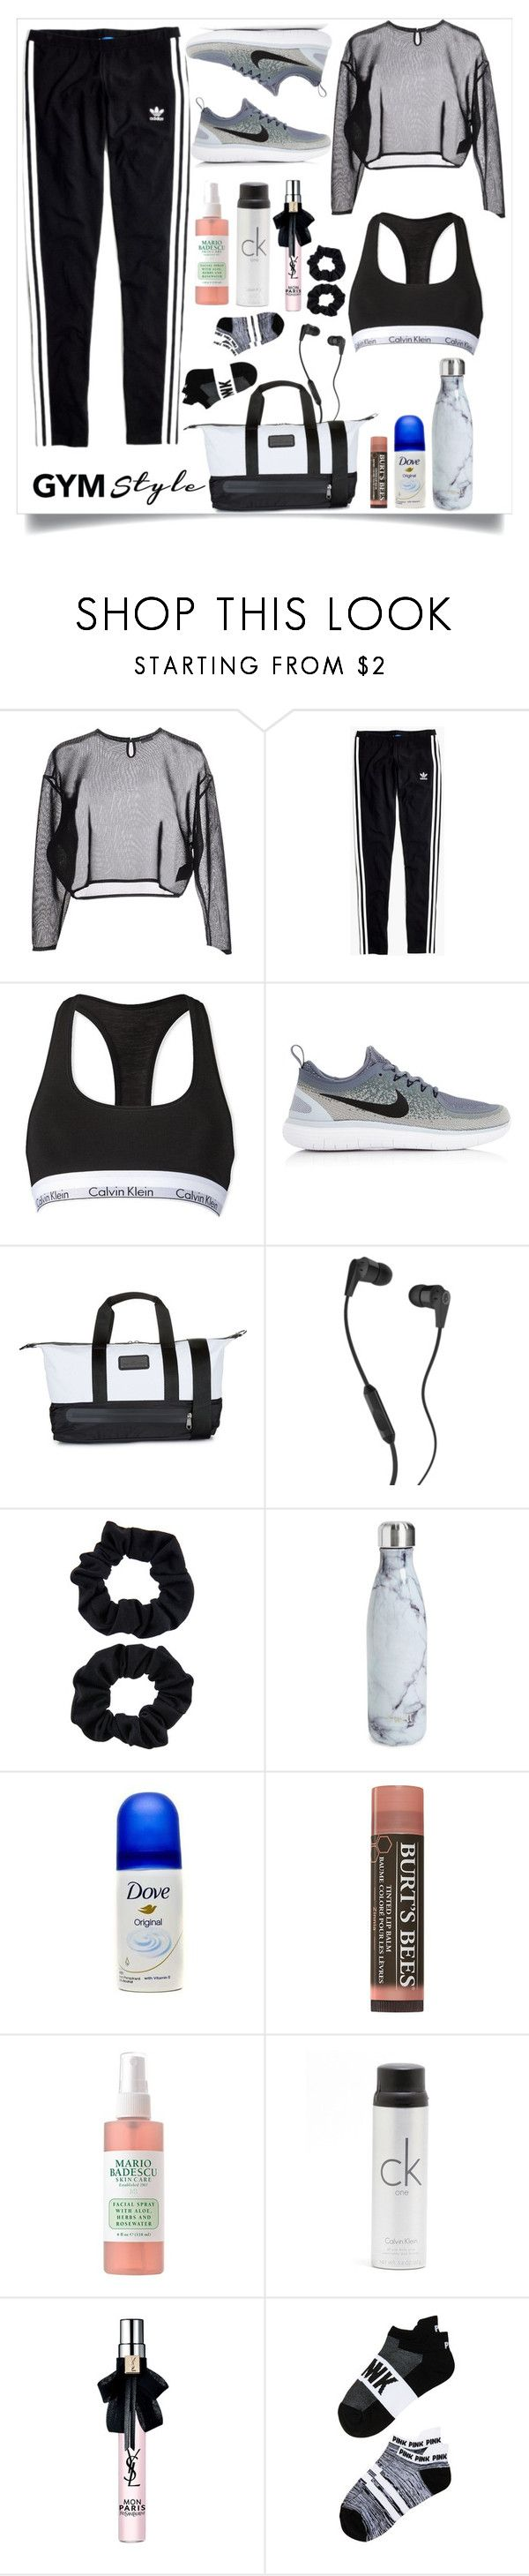 """Sans titre #93"" by sarahmartens2 ❤ liked on Polyvore featuring Yves Saint Laurent, Madewell, Calvin Klein, NIKE, adidas, Skullcandy, Accessorize, S'well and Victoria's Secret"